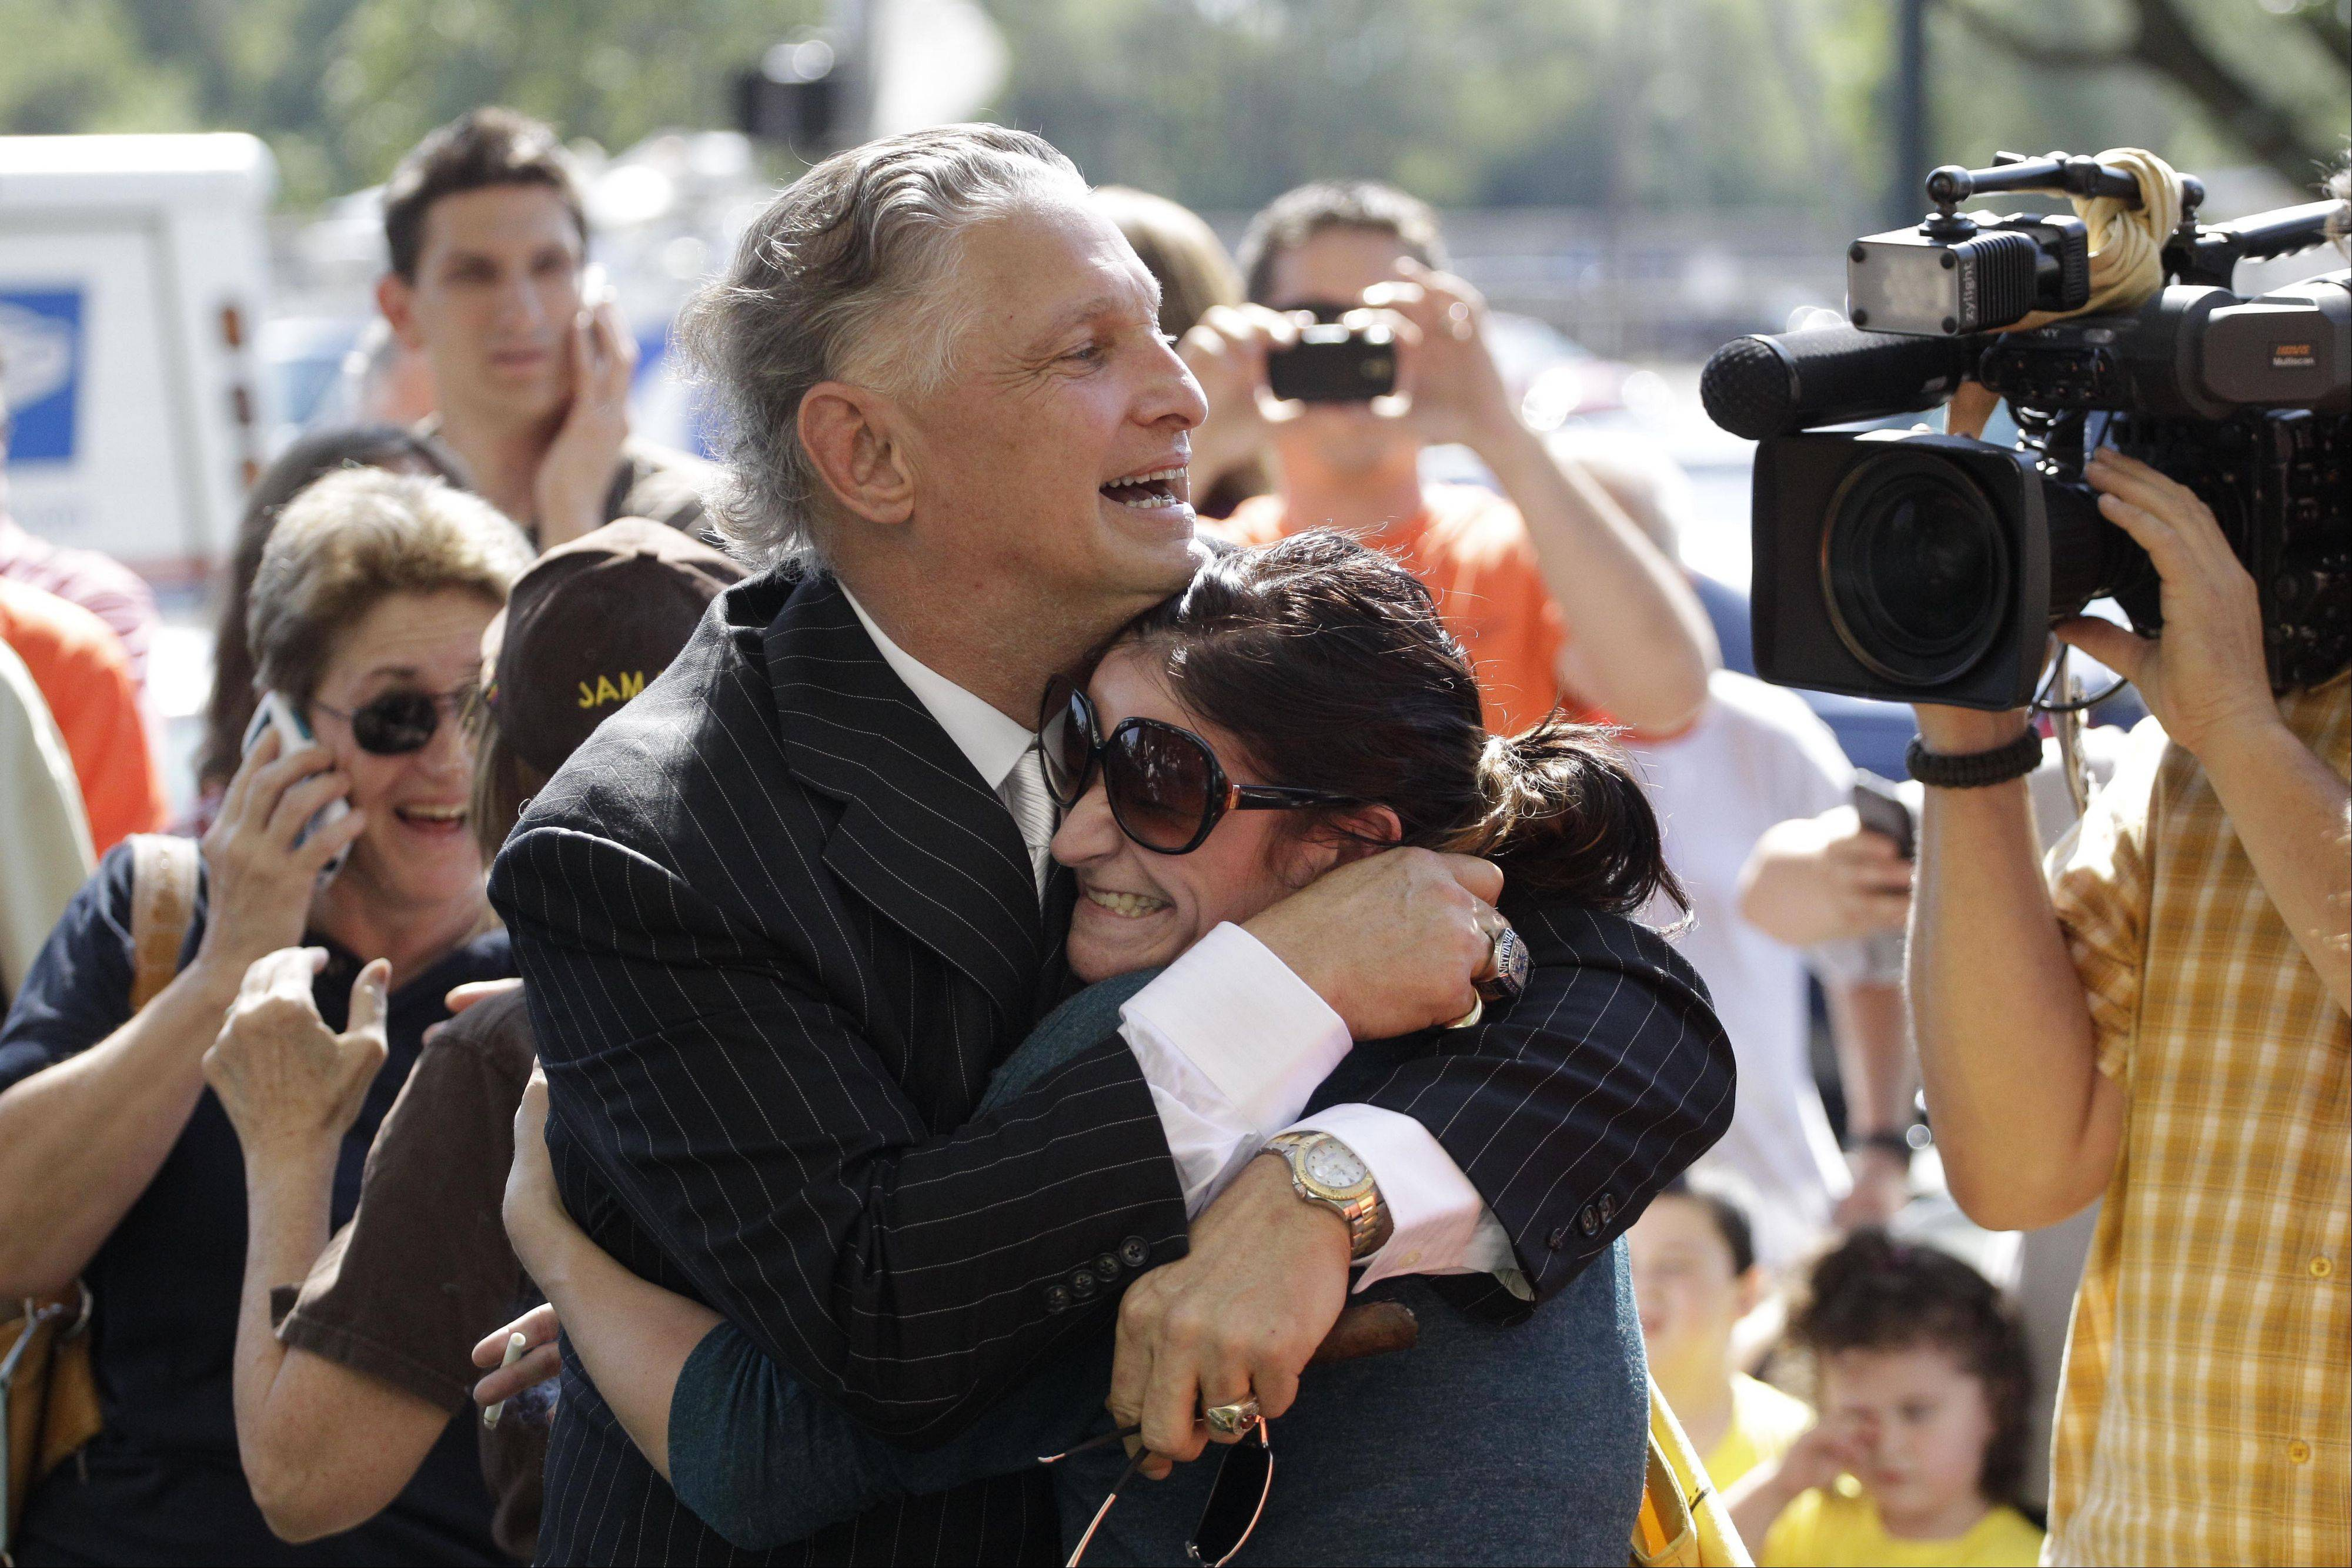 Jeff Ruby and Stephanie Freitage embrace outside the Will County Courthouse after word spread that former Bolingbrook police officer Drew Peterson was found guilty of murdering his third wife Kathleen Savio Thursday, Sept. 6, 2012, in Joliet, Ill.